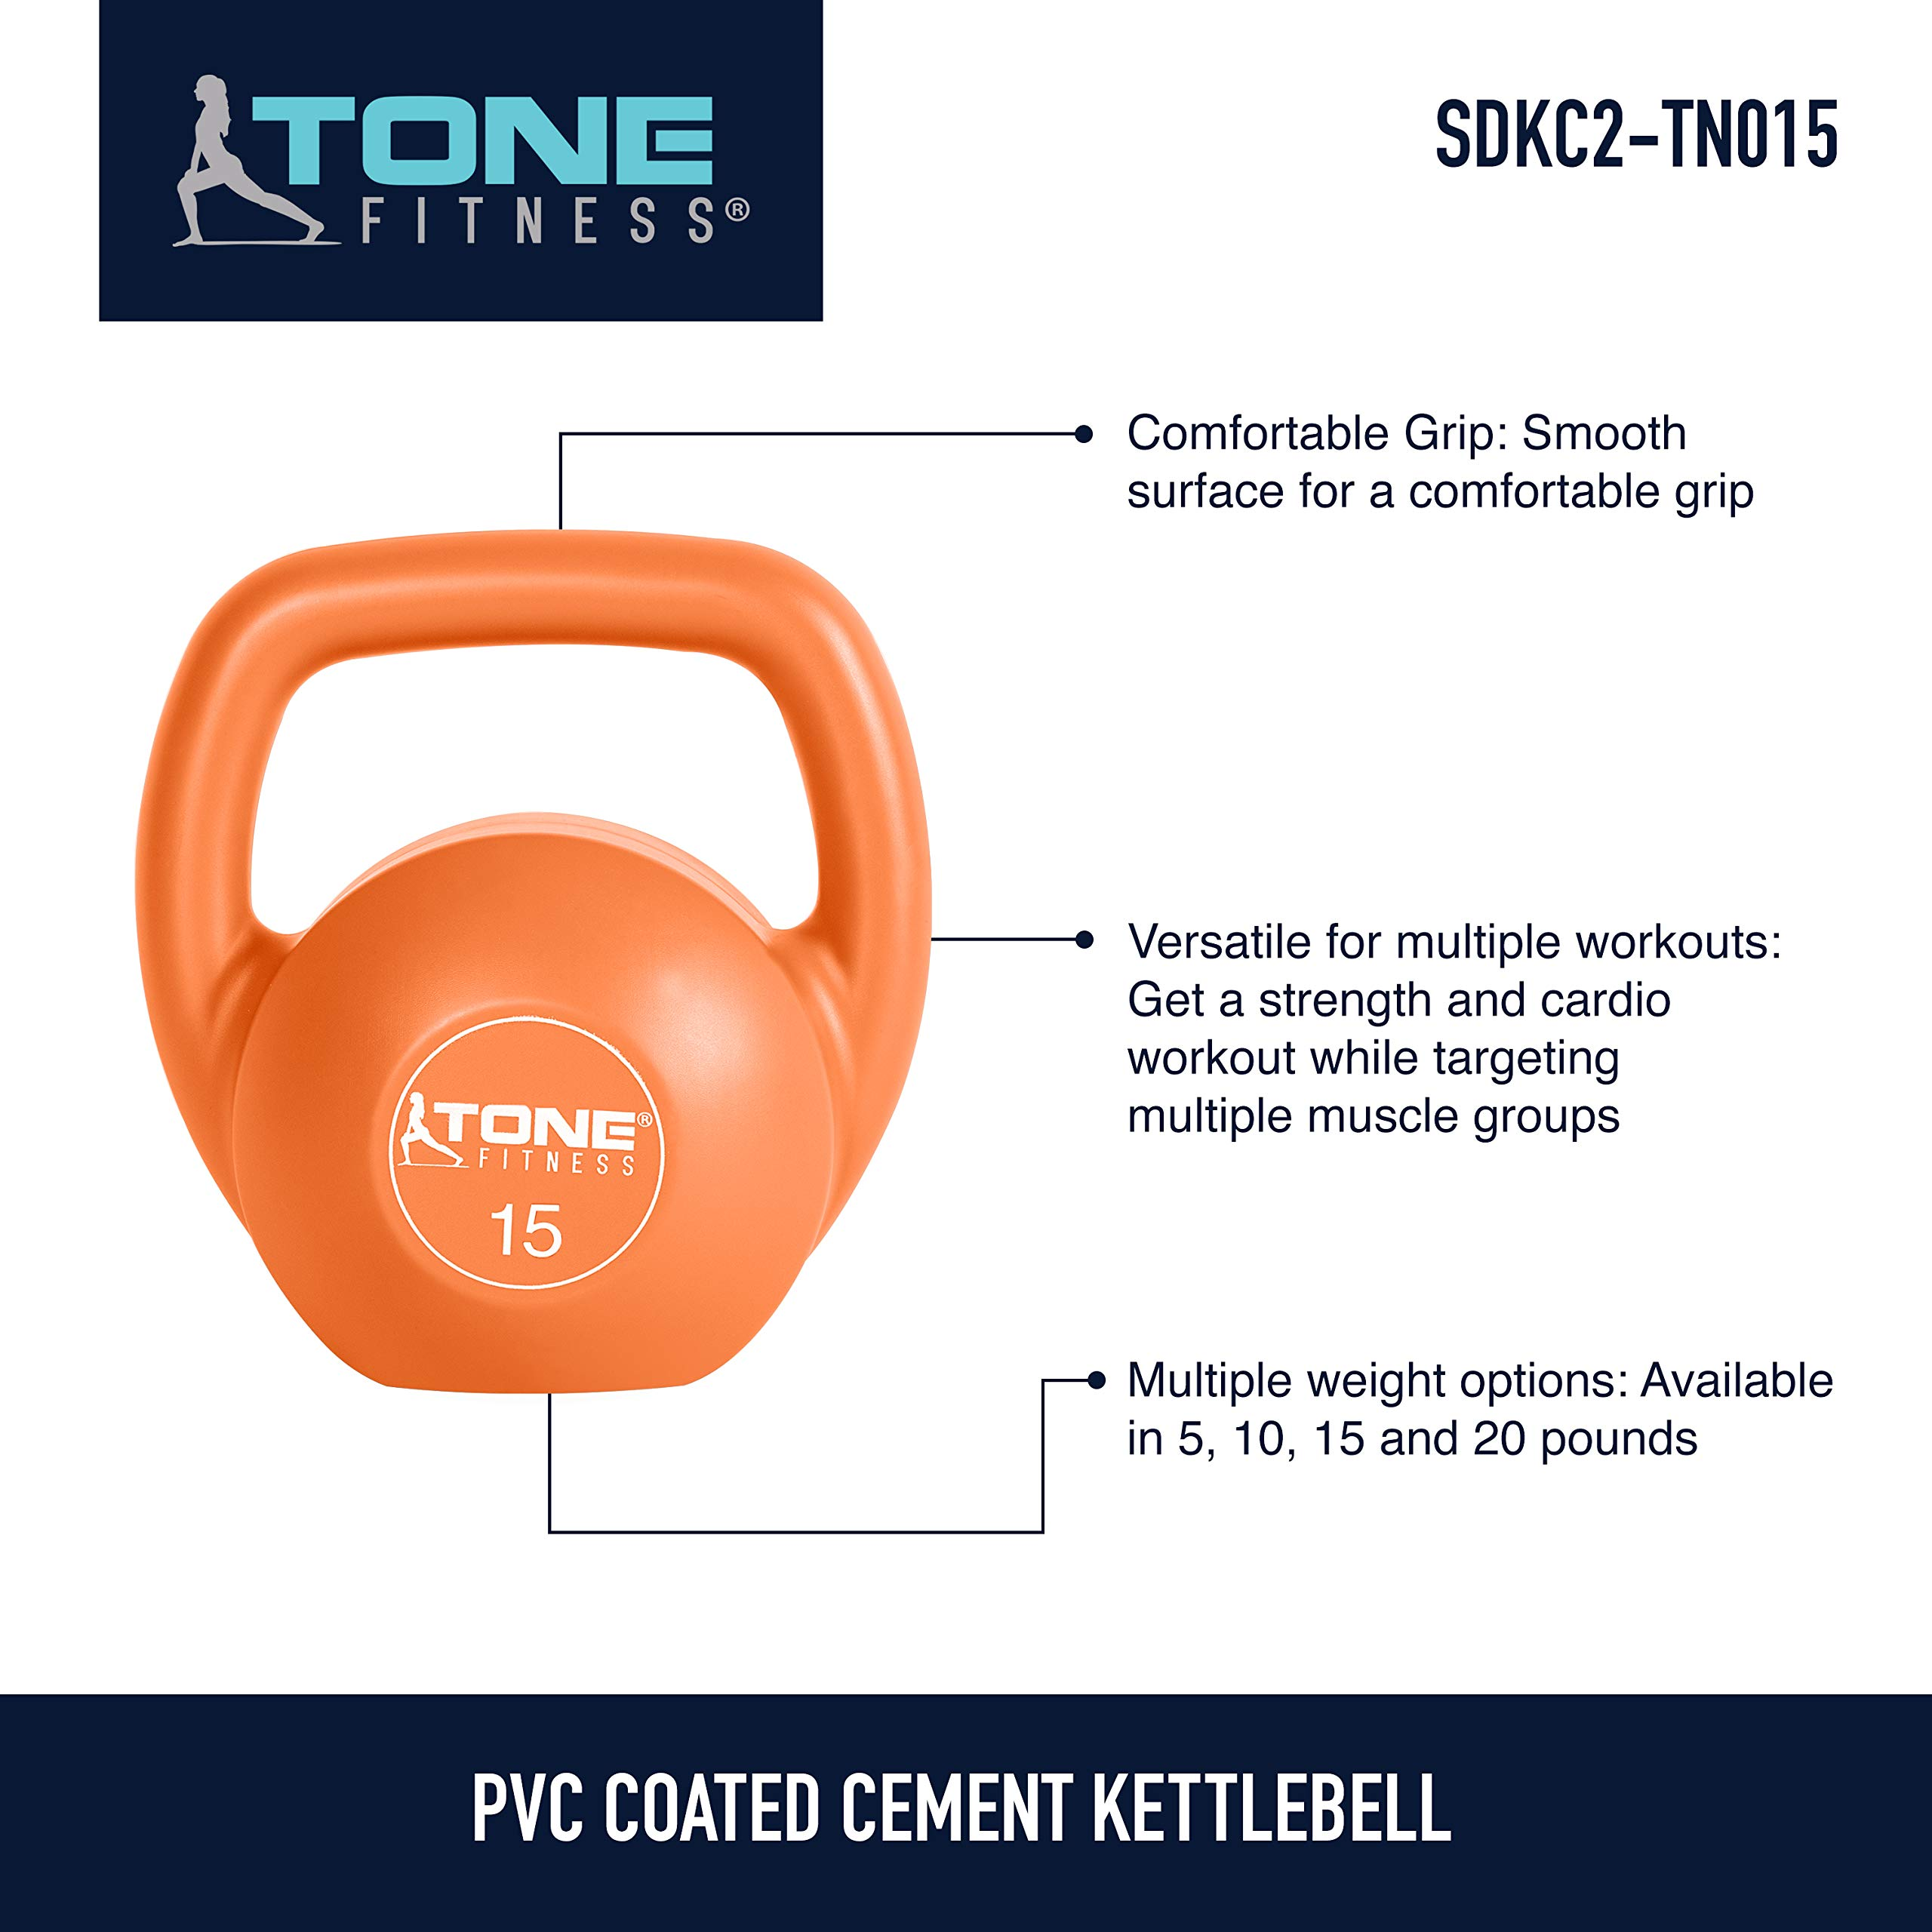 Tone Fitness Vinyl Kettlebell, 15-Pound, Orange by Tone Fitness (Image #6)